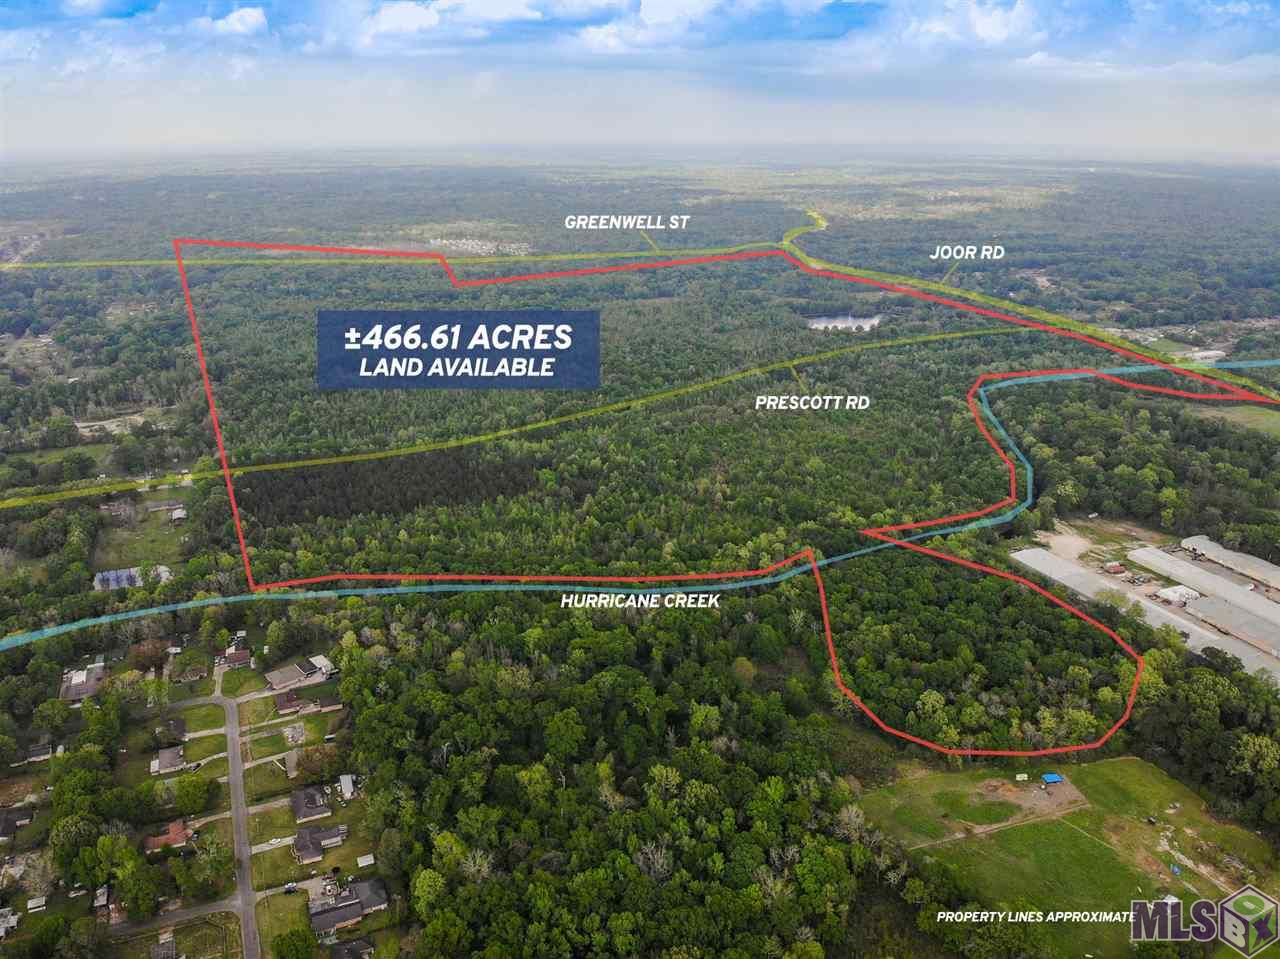 All property boundaries are approximate.  Located just north of Greenwell Springs Road and bordering Joor Road along the drive into Central City lies this large, ±466.61 acre development tract. The tract borders the edge of existing development in the northeastern sector of Baton Rouge. The property itself lies just outside of the Baton Rouge city limits.  The property is mostly wooded but also contains a few ponds and clearings. Two creeks run through the property (Hurricane Creek and Roberts Canal) and Greenwell Street and Prescott Road both run east/west through the tract. Also existing on the property is a pre-Civil War house in need of restoration.  The property is an excellent tract for recreation while presenting the opportunity for future development.  It is currently zoned A1 for Single Family Residential.